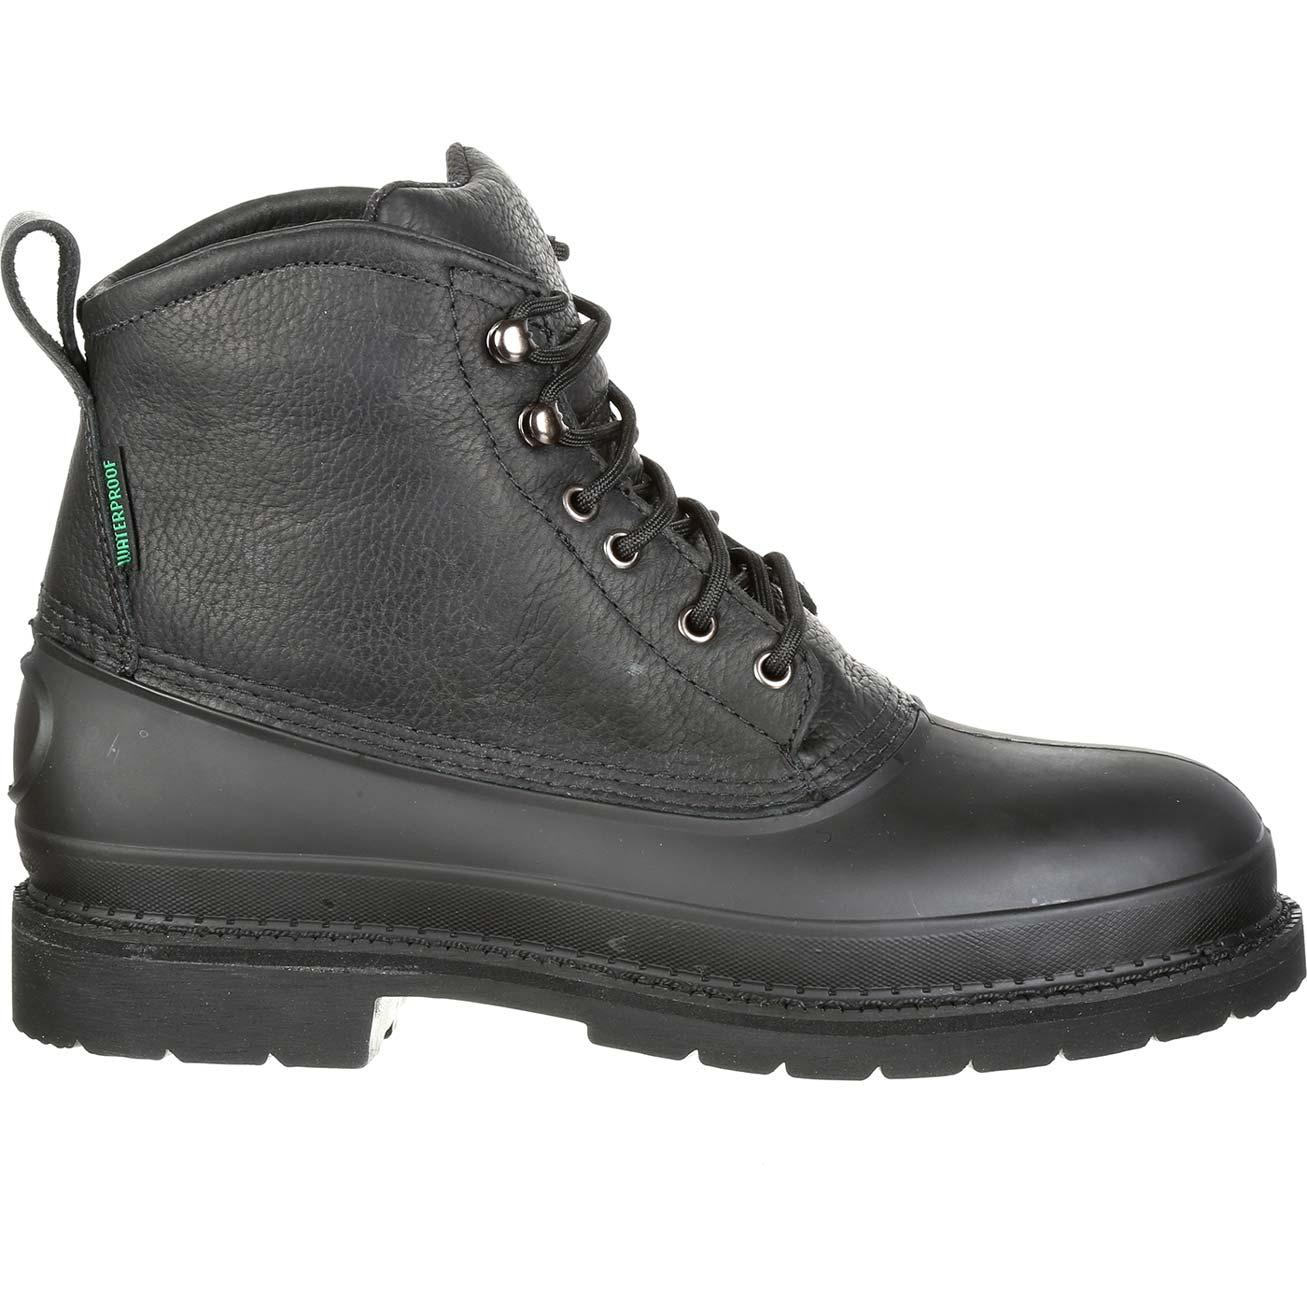 Lehigh Safety Shoes Store Locator